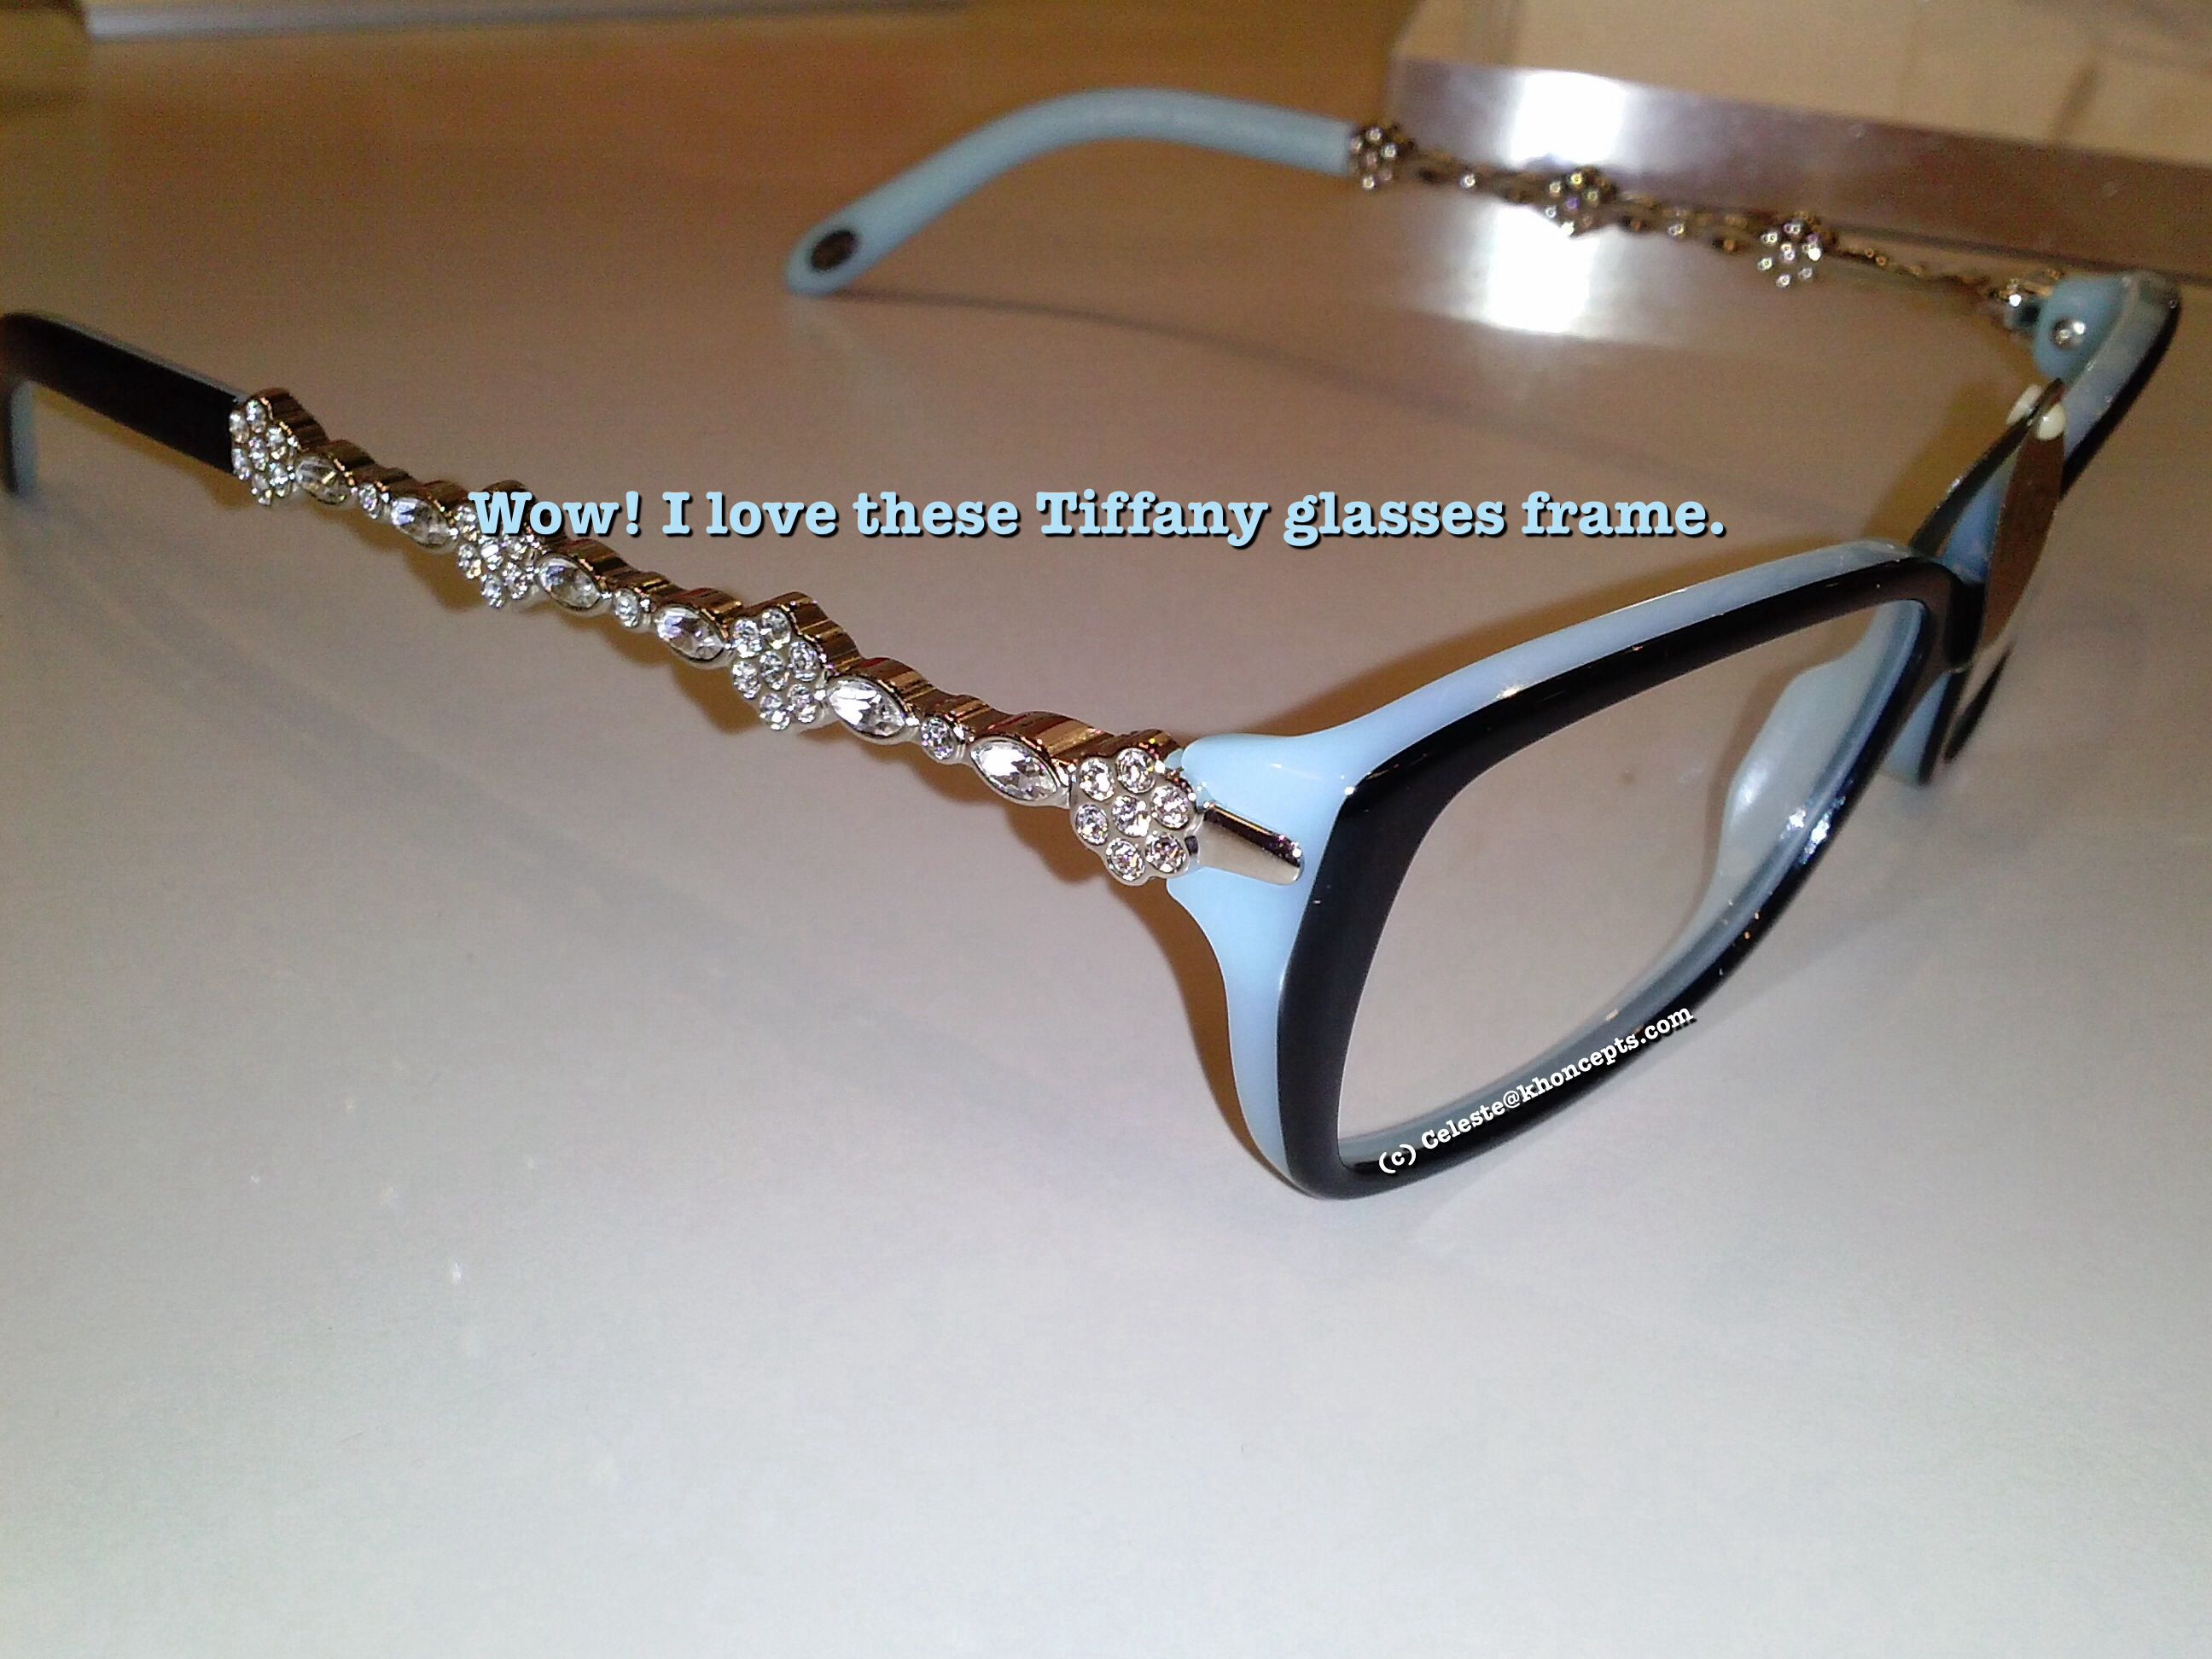 Love These Bling Tiffany Glasses Frames Spotted At My Eye